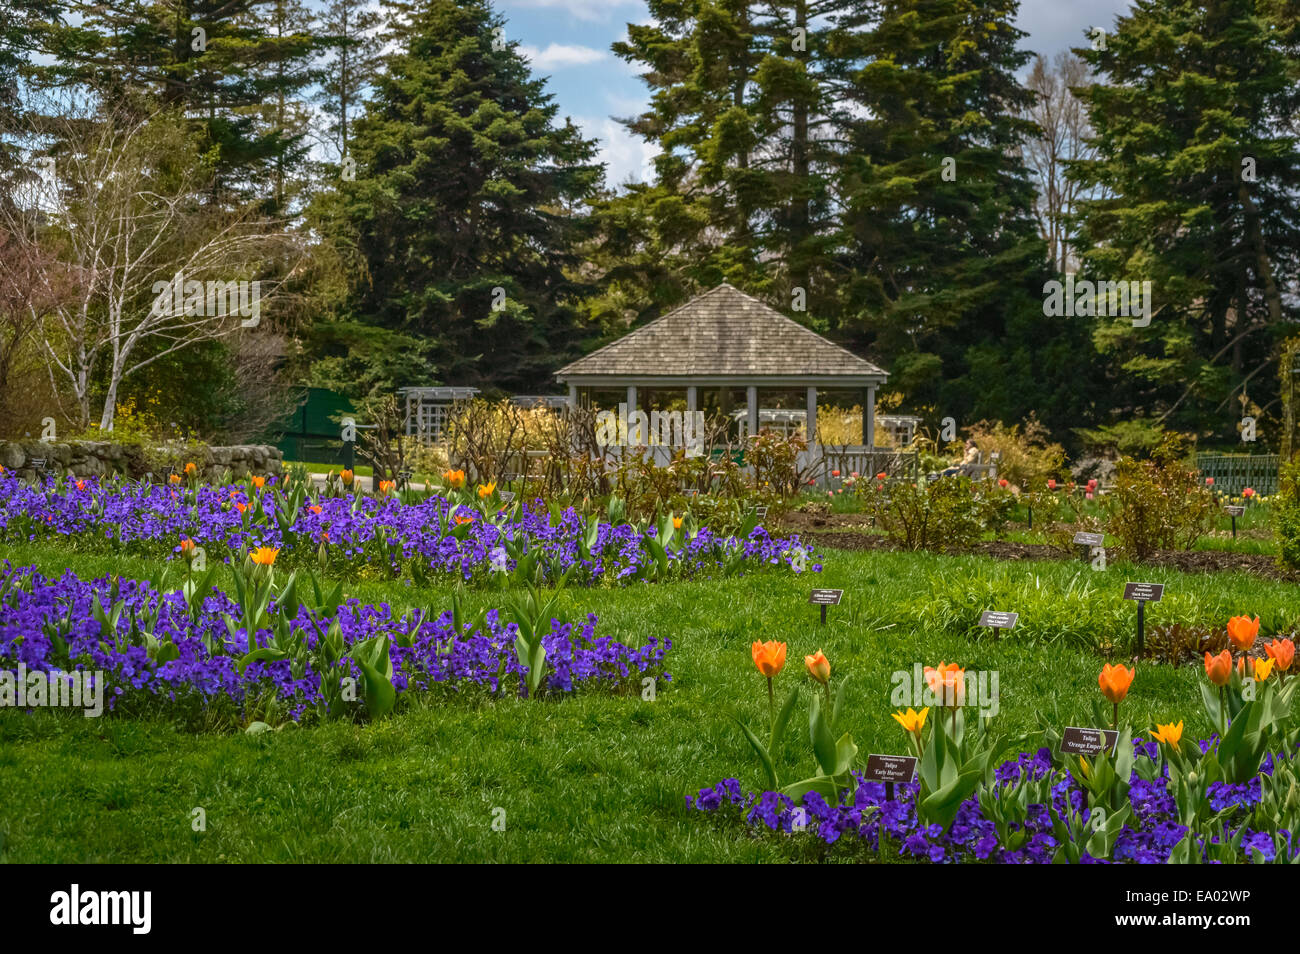 tulip garden with a Folly, evergreen trees and sky - Stock Image